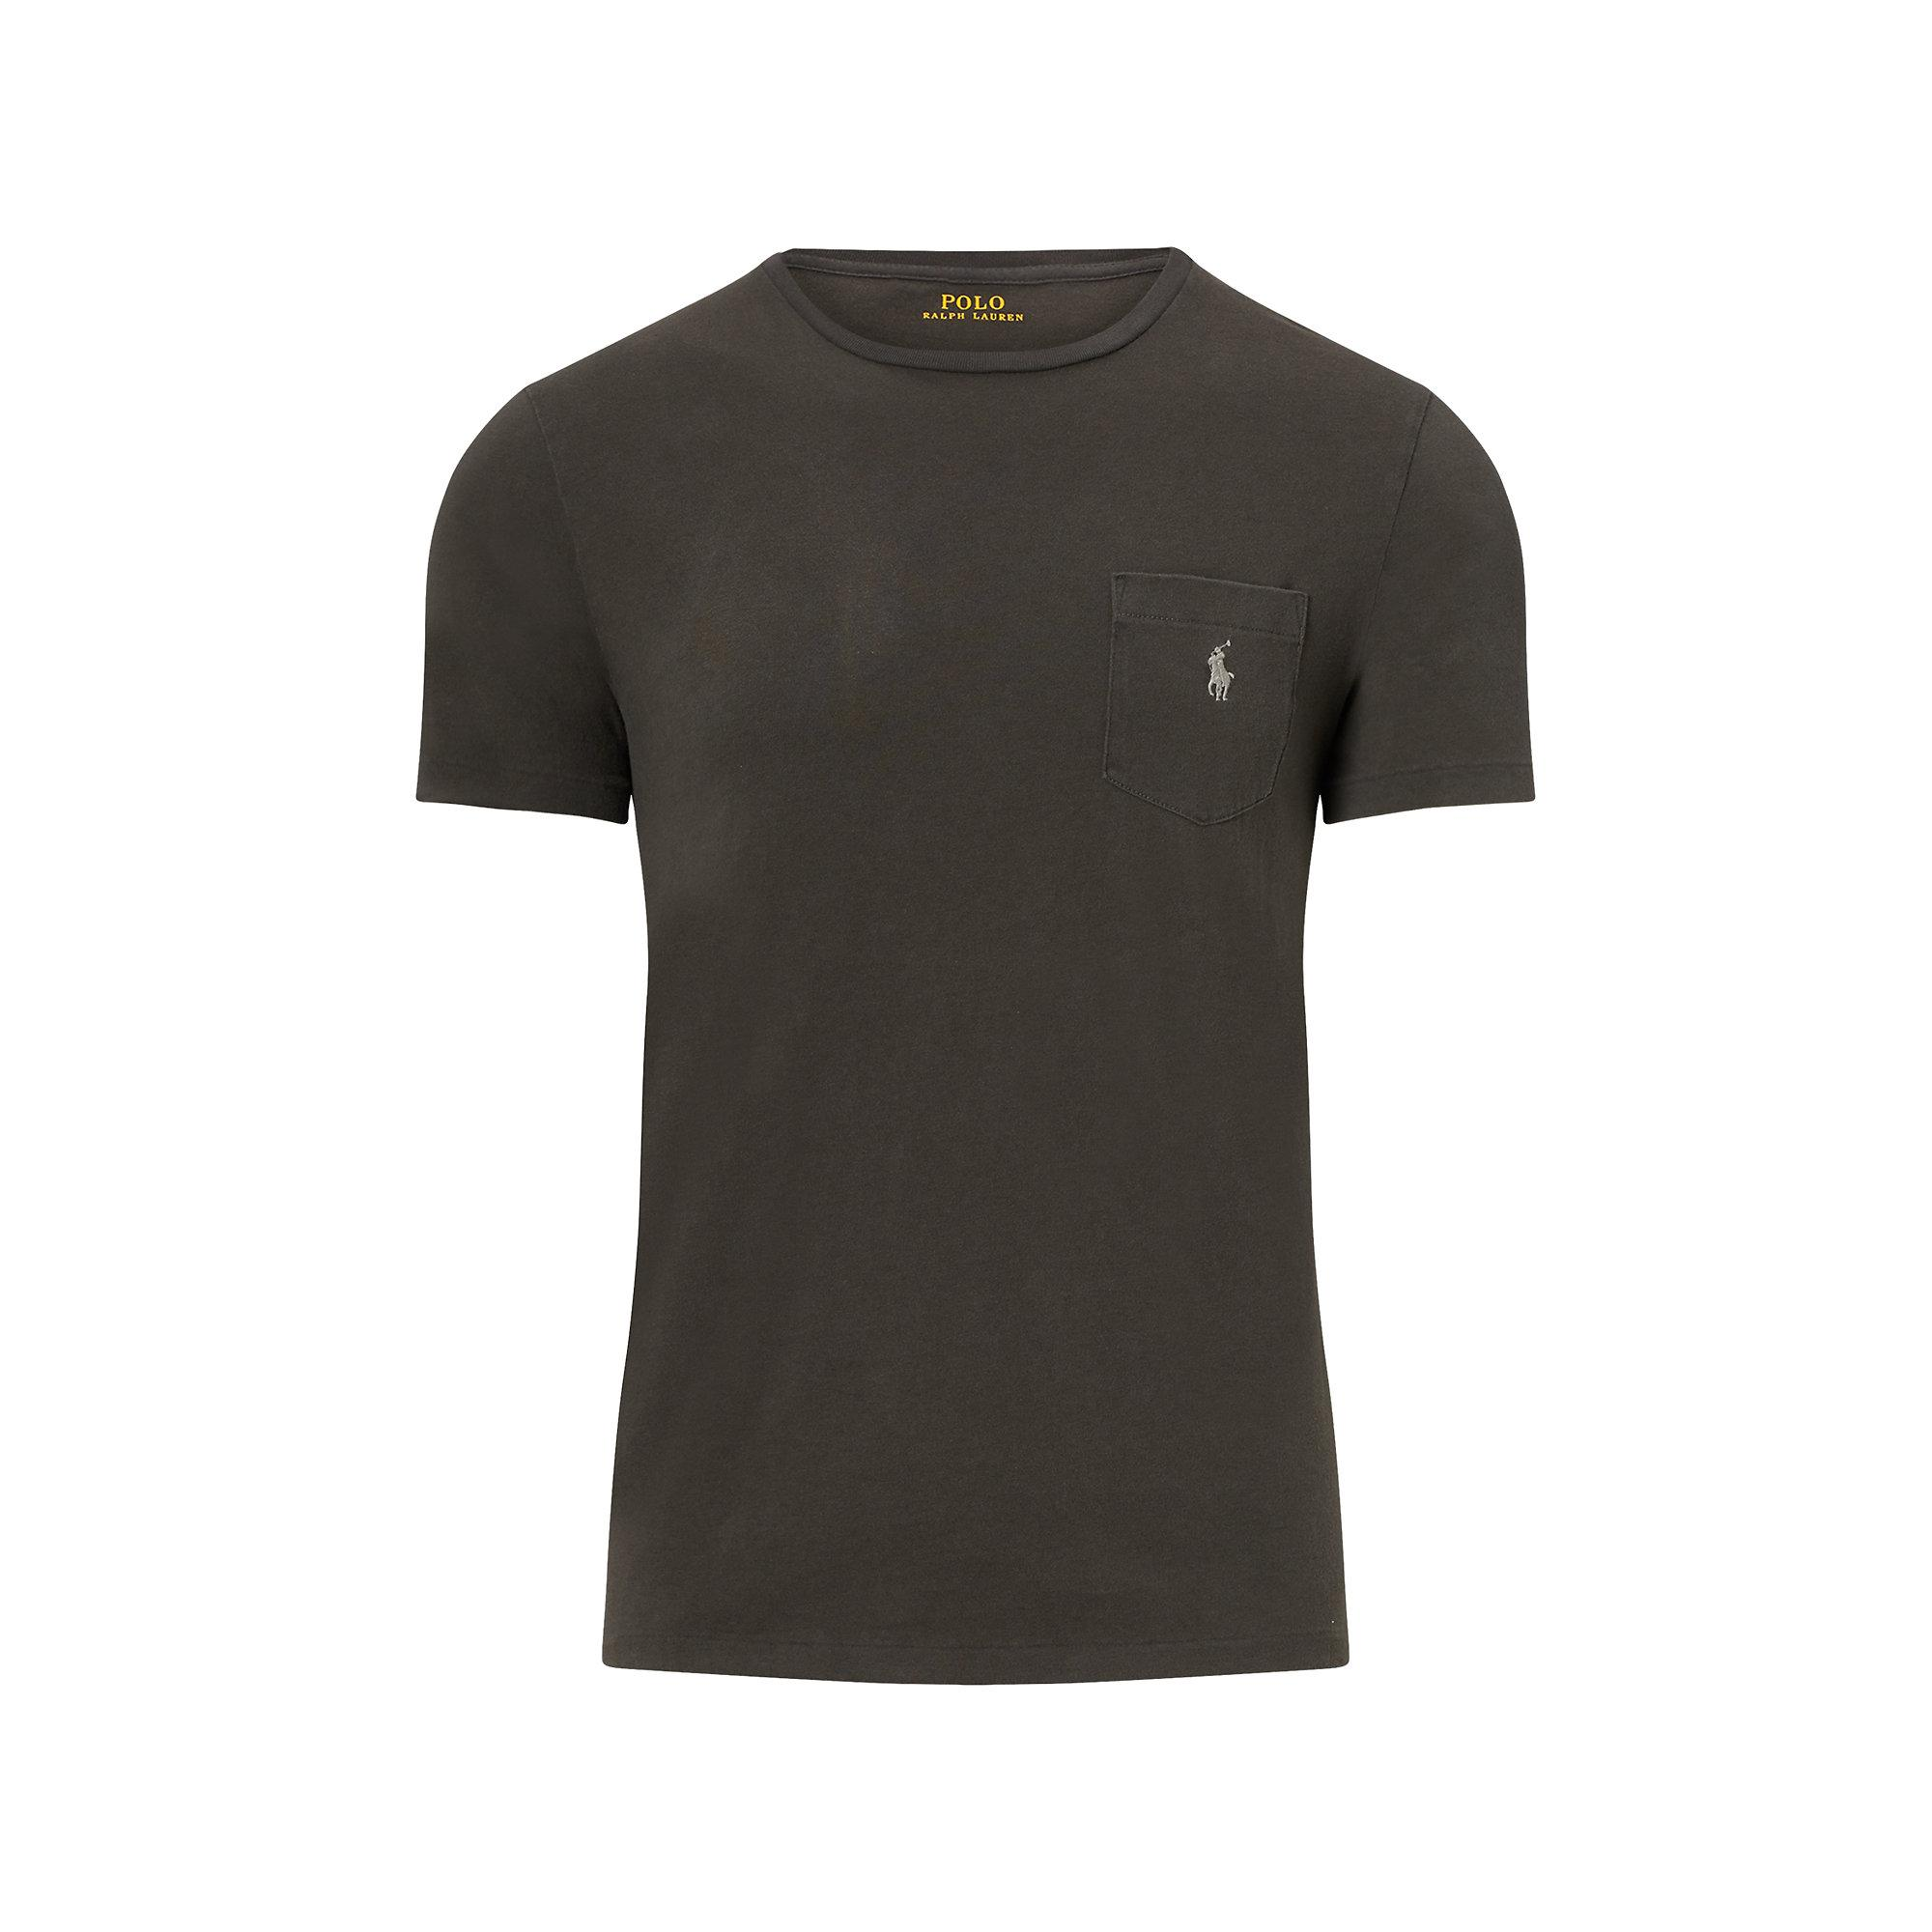 Polo ralph lauren cotton jersey pocket t shirt in black for Men s cotton polo shirts with pocket